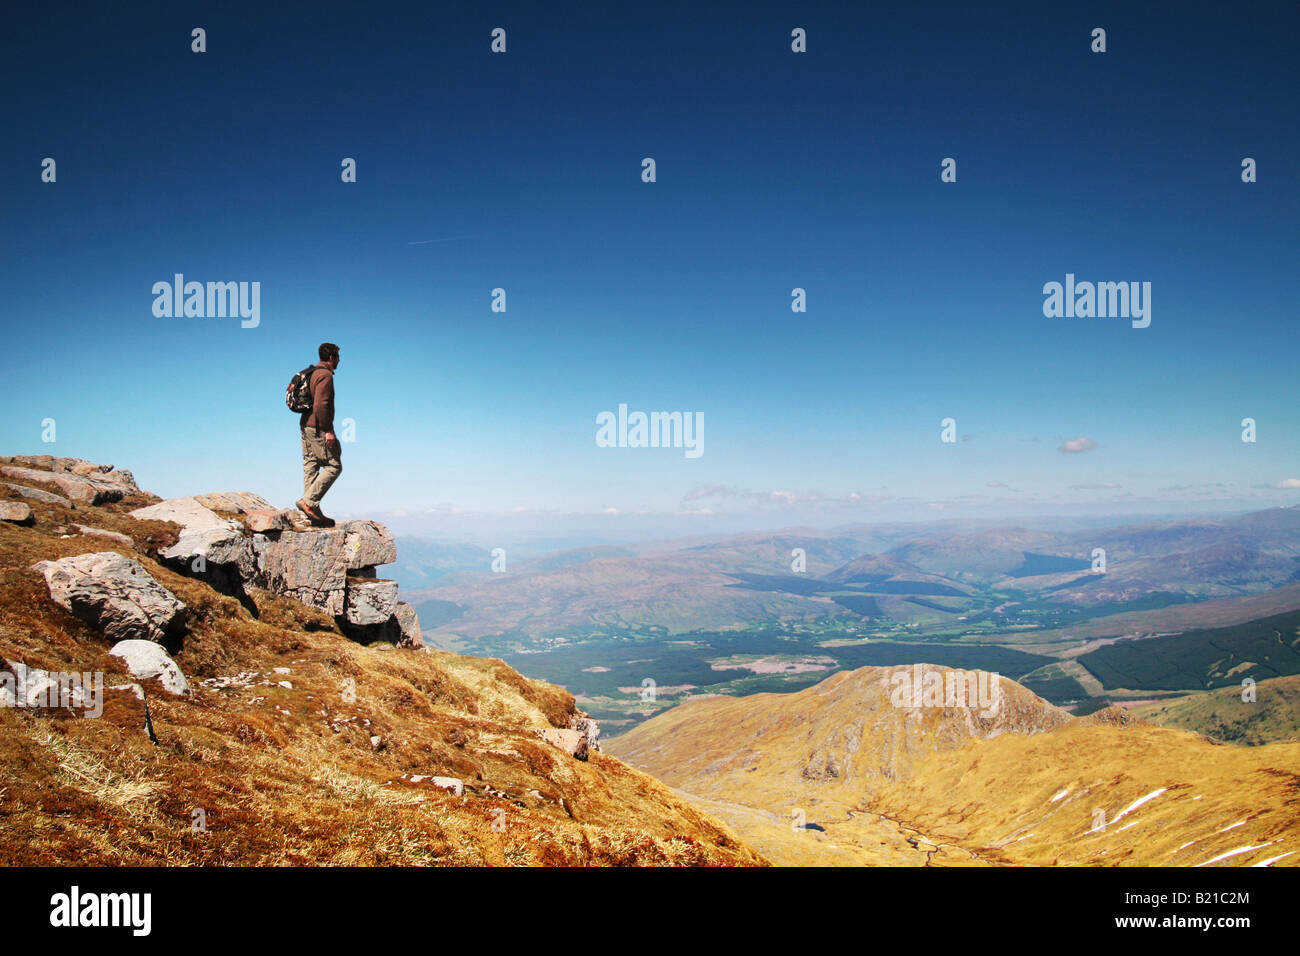 man stood at top of mountain looking at the view - Stock Image